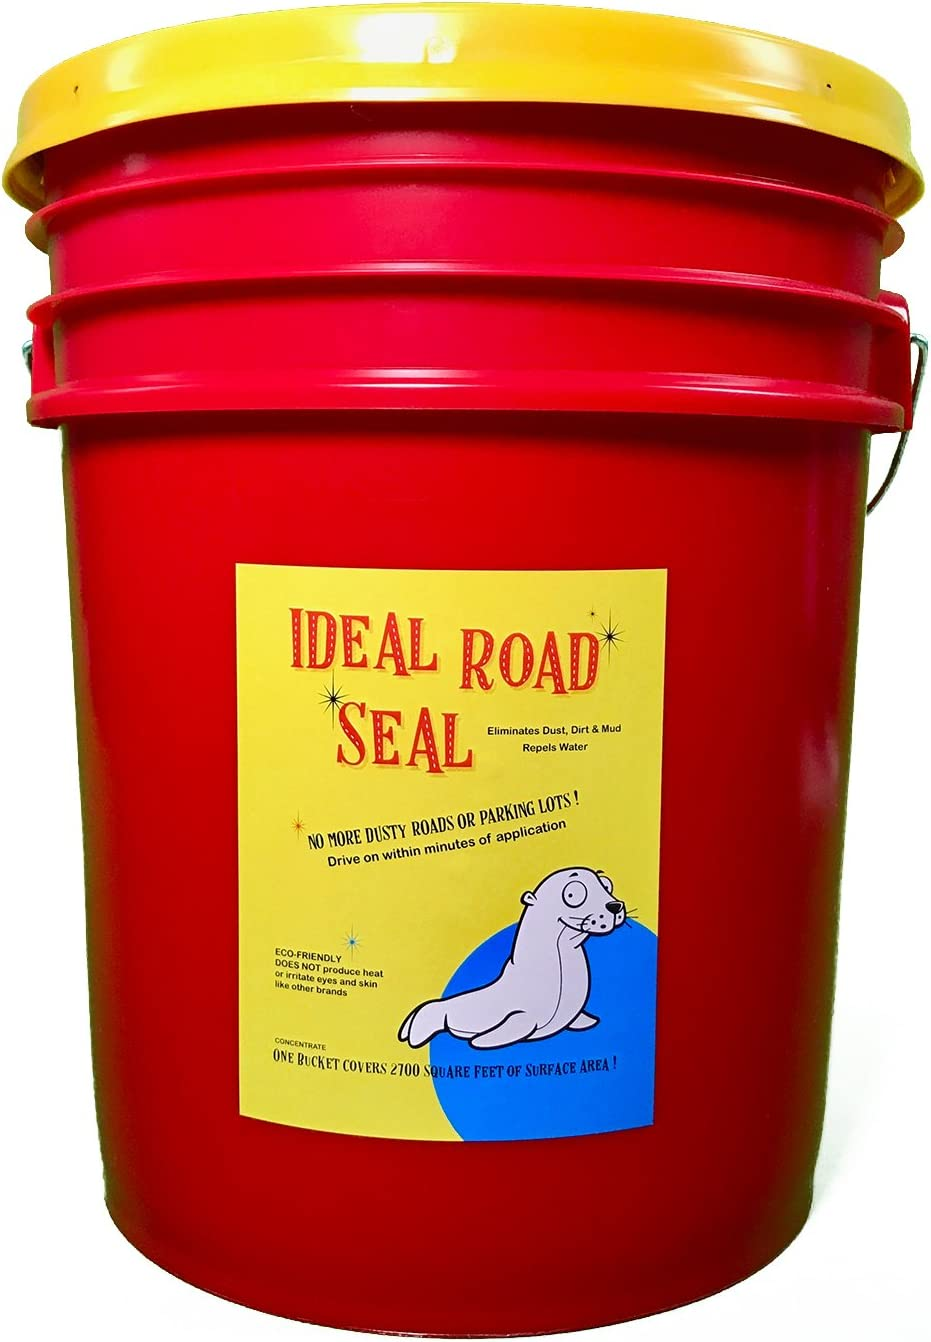 Ideal Road Seal Dust Control, 5 Gallon Liquid Concentrate Covers 2700 SQ. FT, ECO-Friendly!